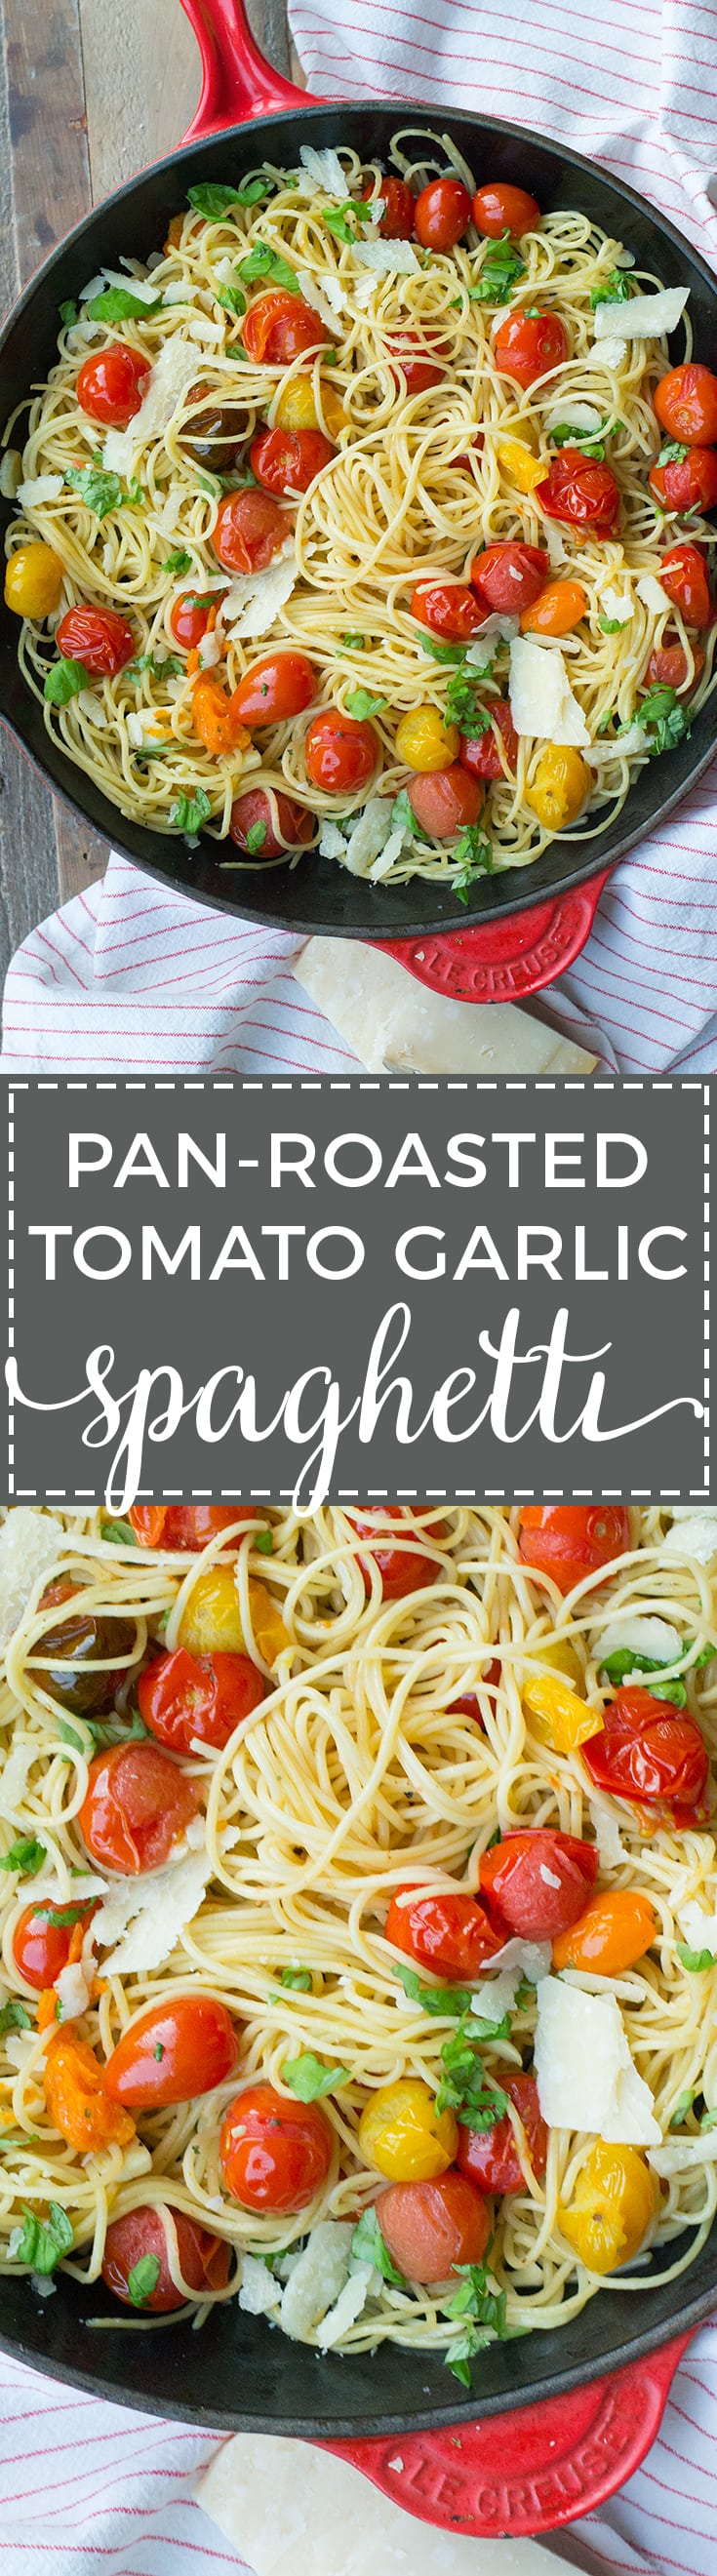 This lightning fast weeknight meal relies on an emulsified sauce to deliver luscious flavor with simple, fresh ingredients - spaghetti, cherry tomatoes, and garlic. Quick and easy pasta for dinner tonight!